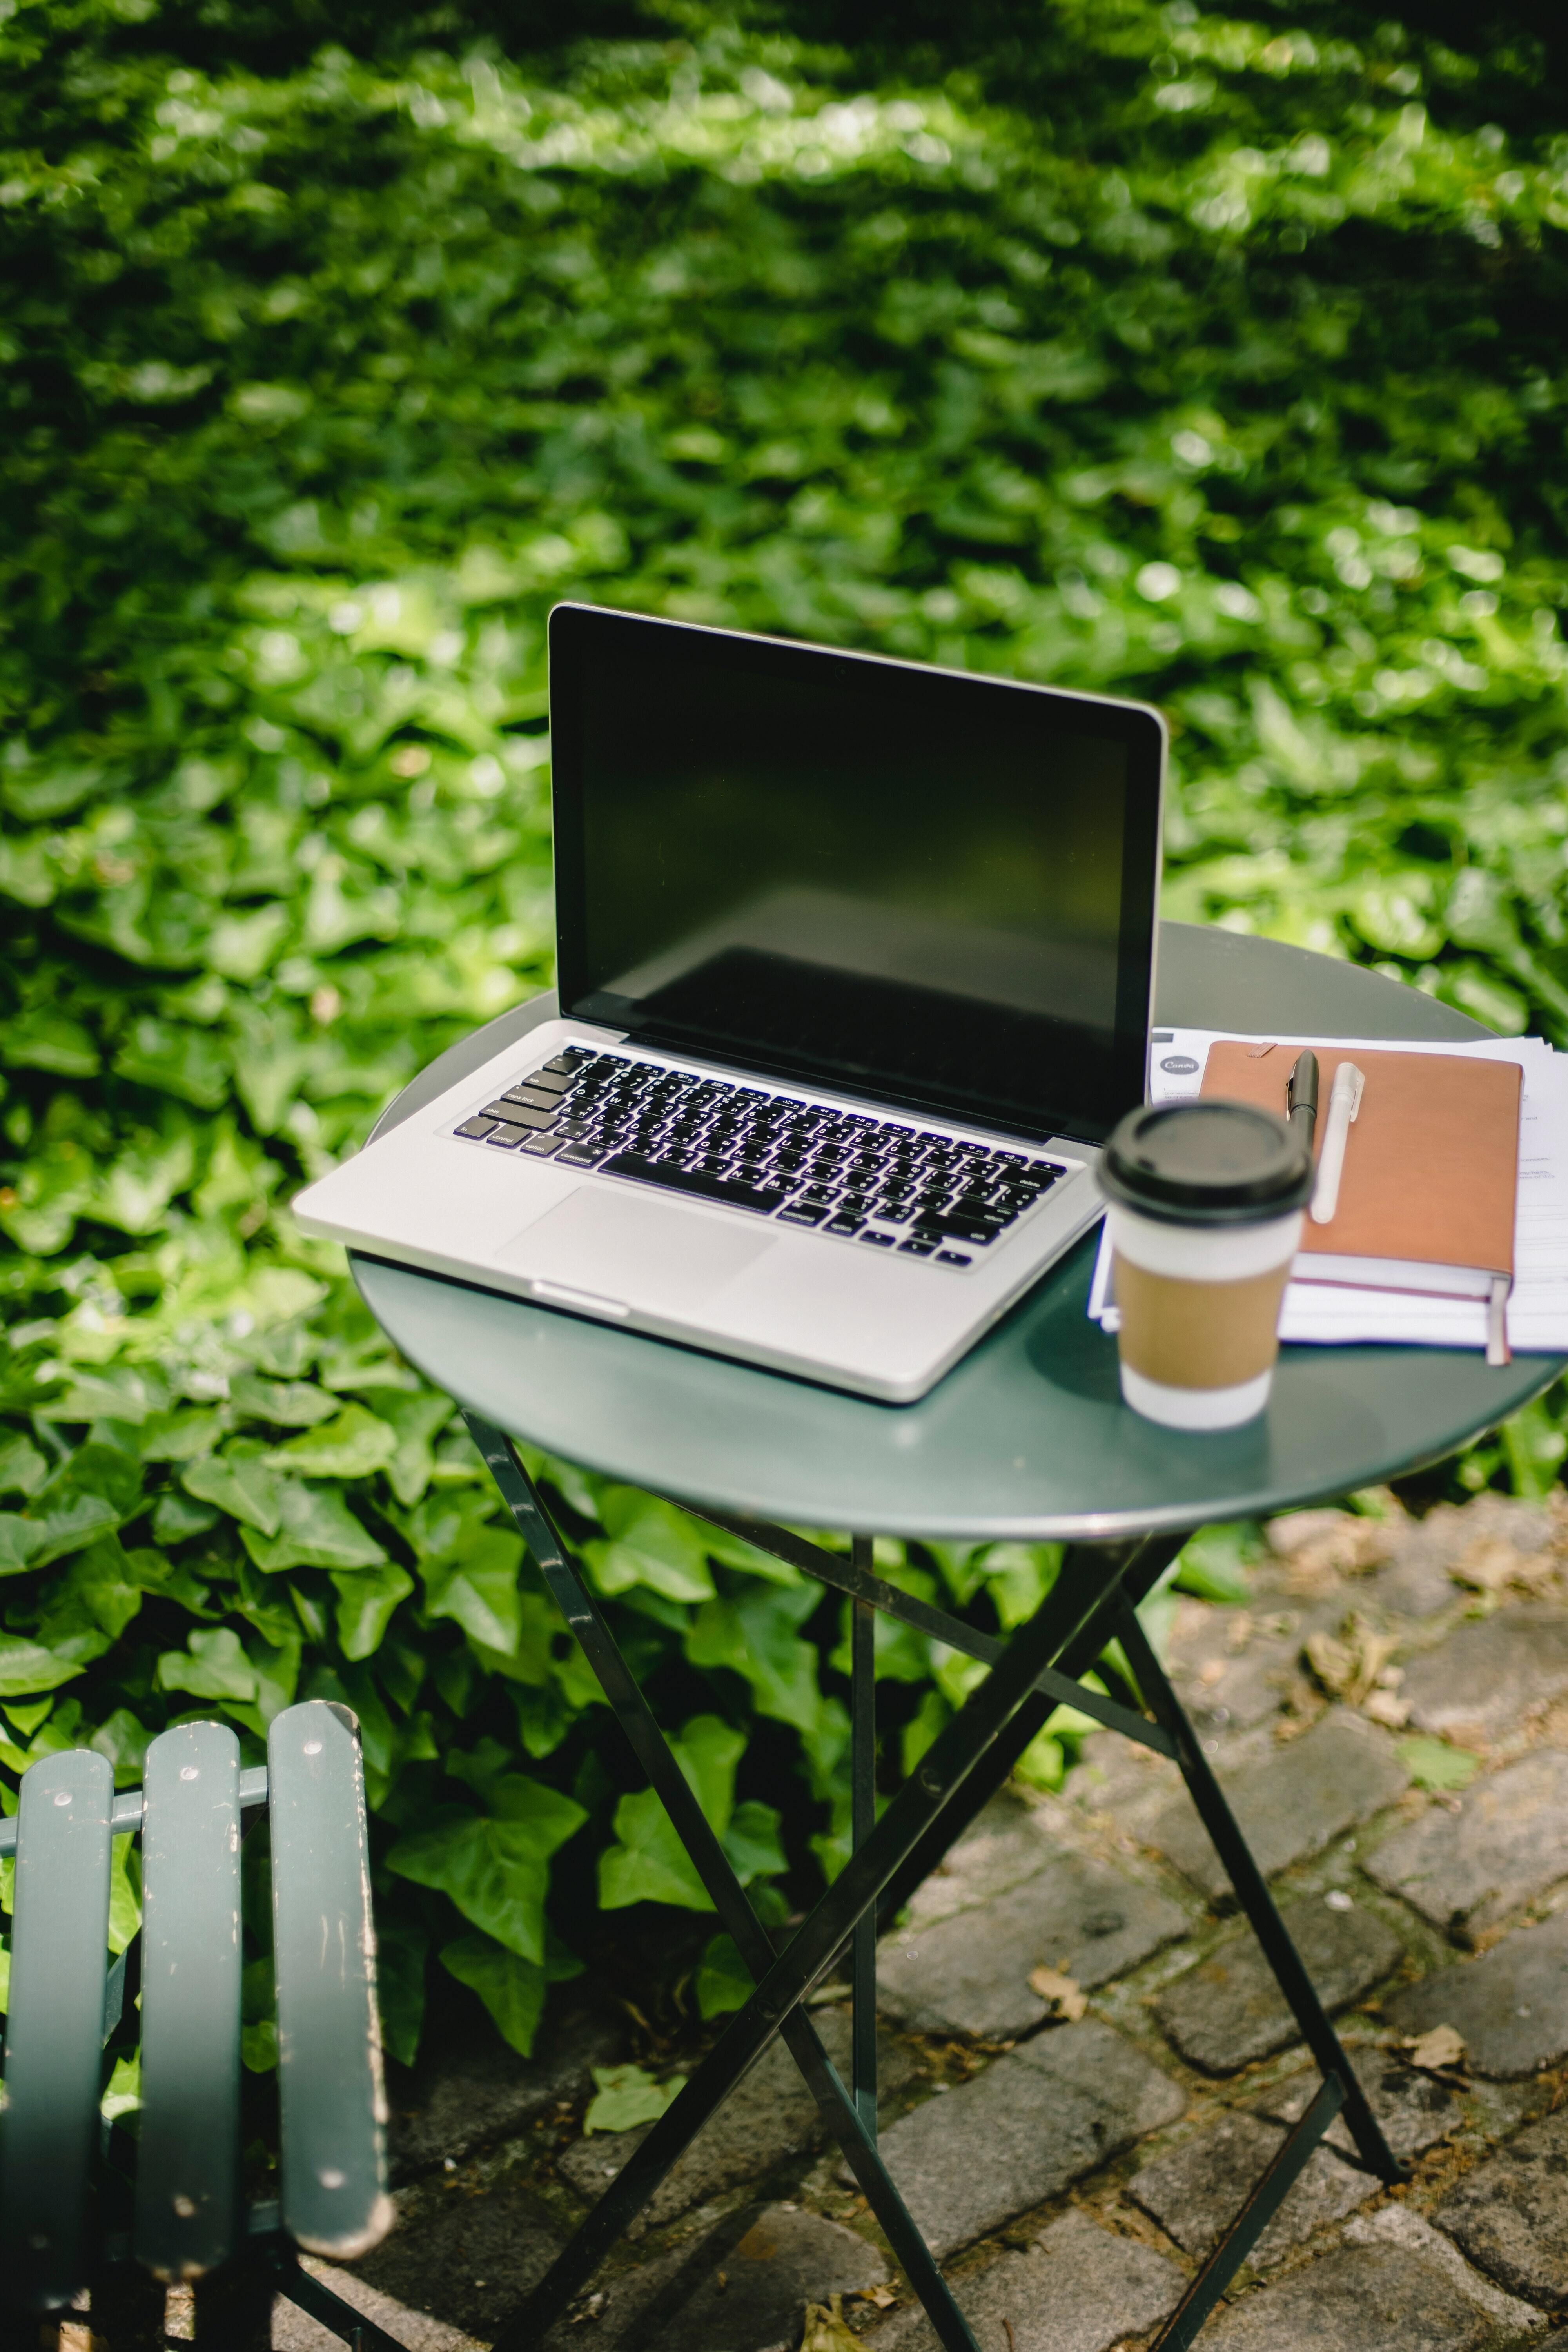 Making possible telework from anywhere in the EU